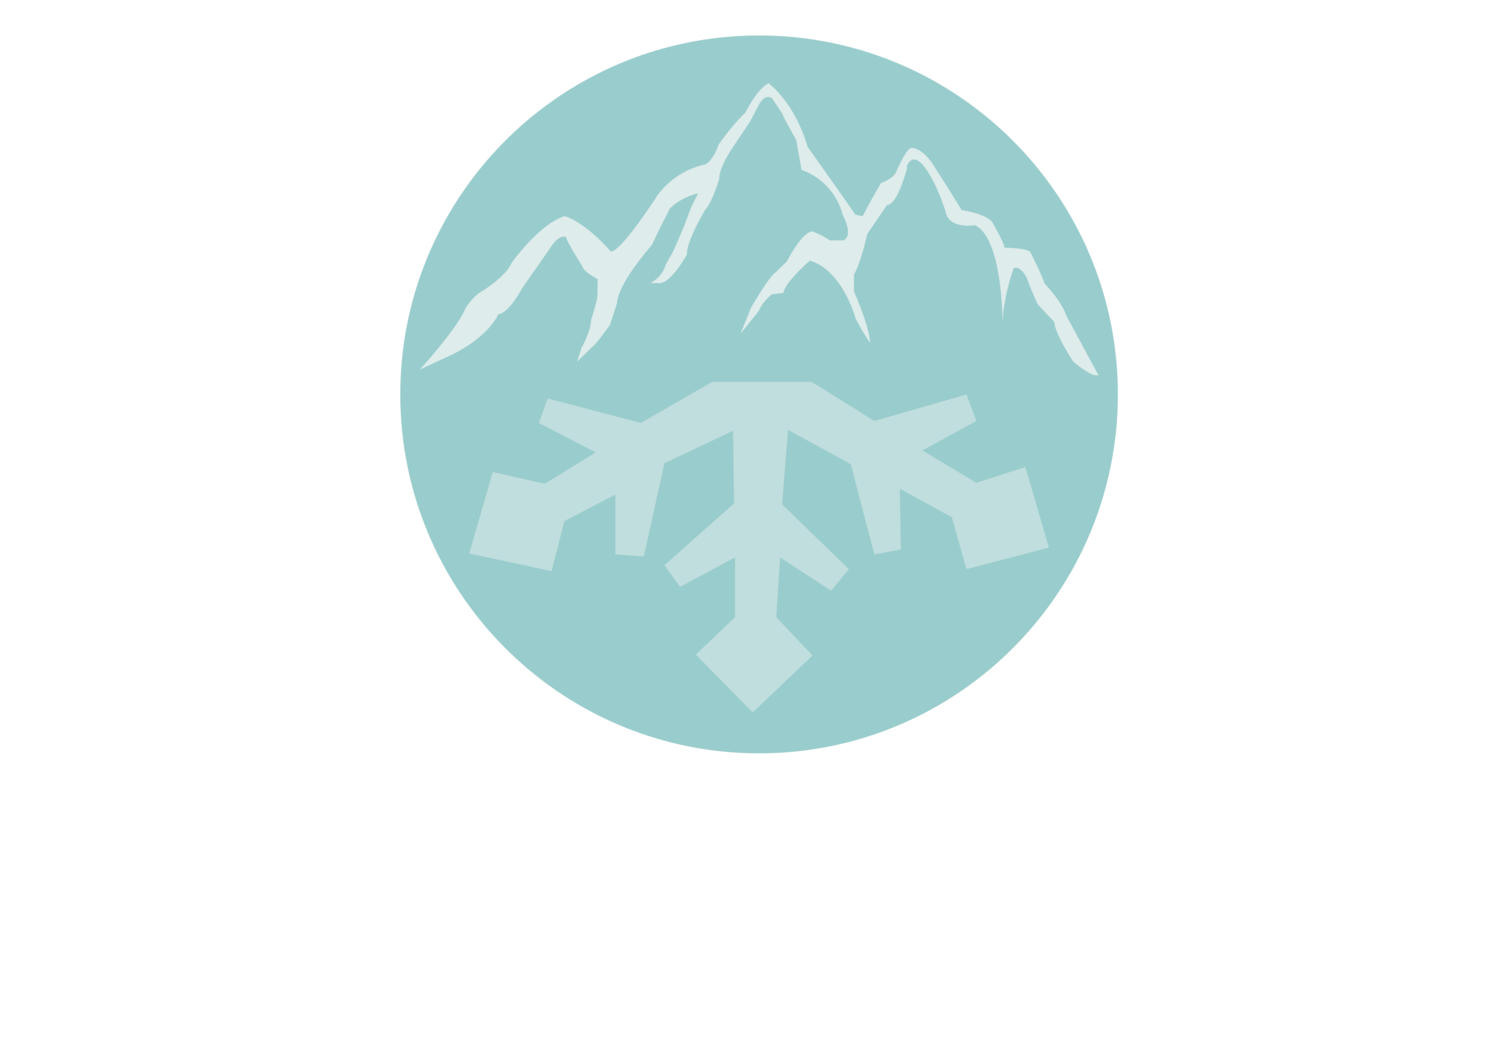 The Independent Ski Co.